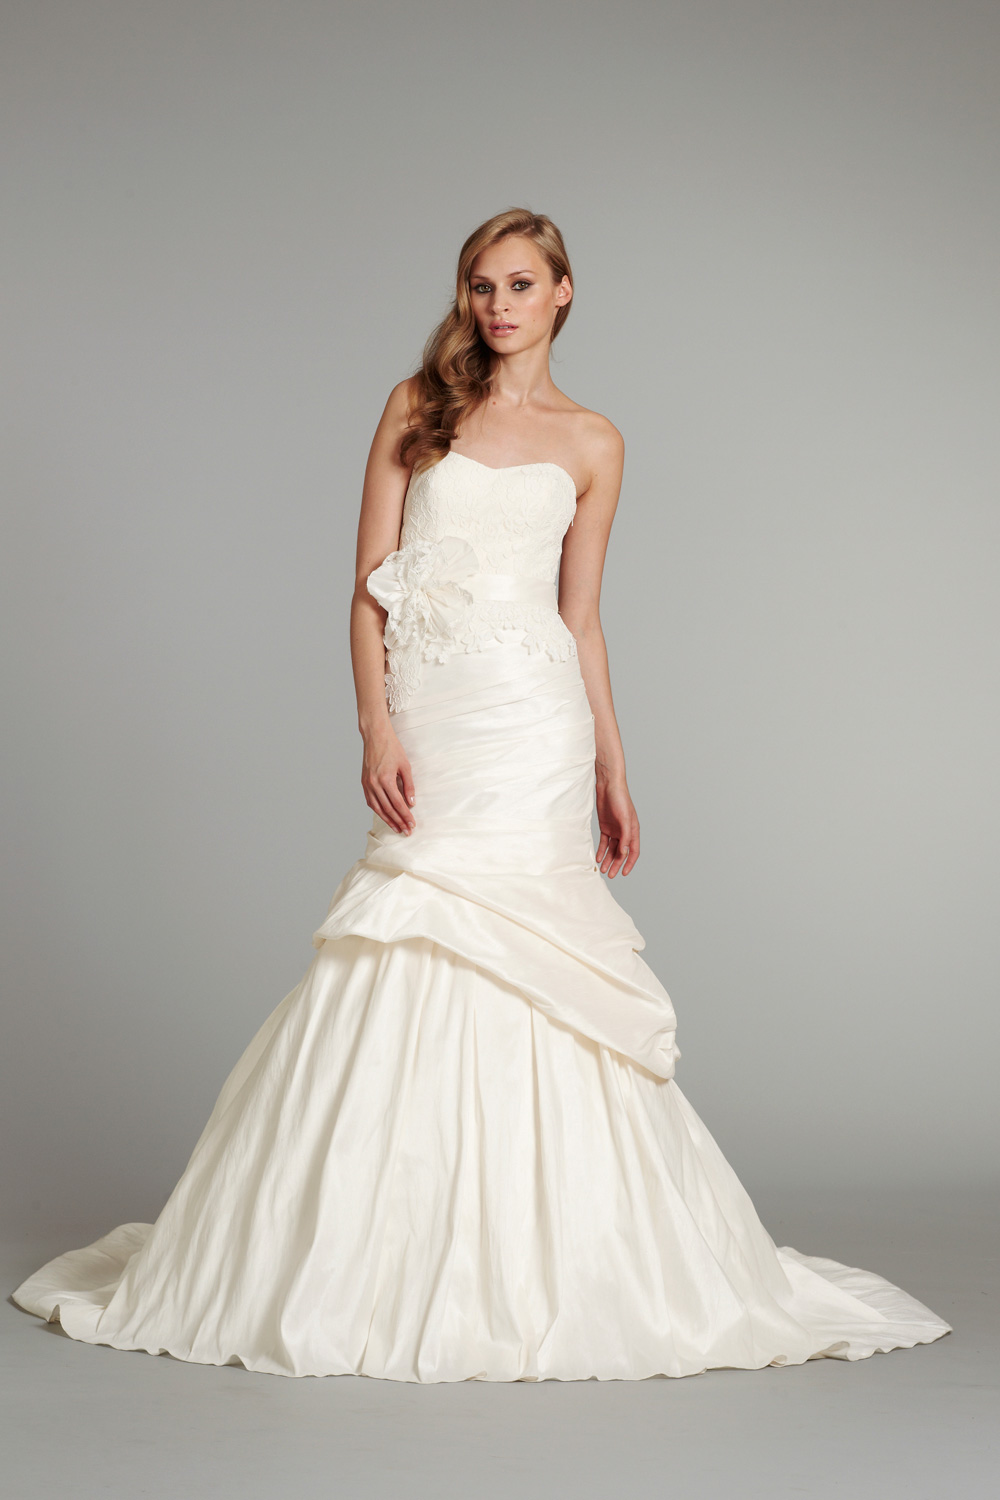 Bridal-gown-wedding-dress-jlm-hayley-paige-fall-2012-lulu-front.original